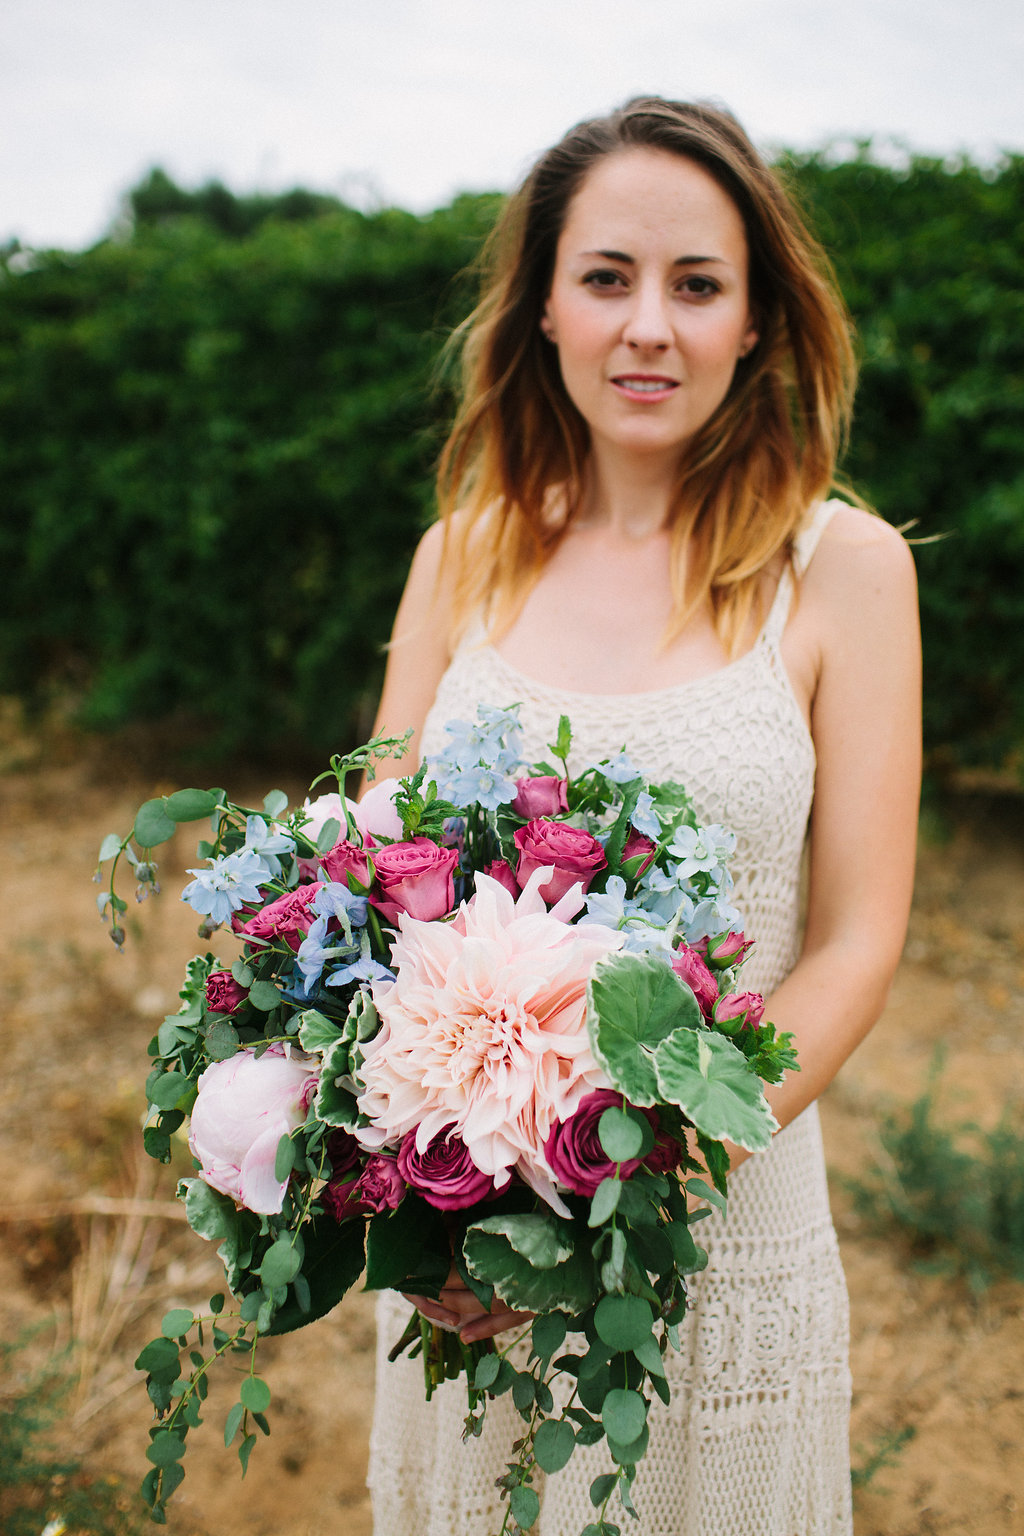 Blush & blue bridal bouquet by San Diego wedding florist, Compass Floral.  Photographed by Ashley Williams.